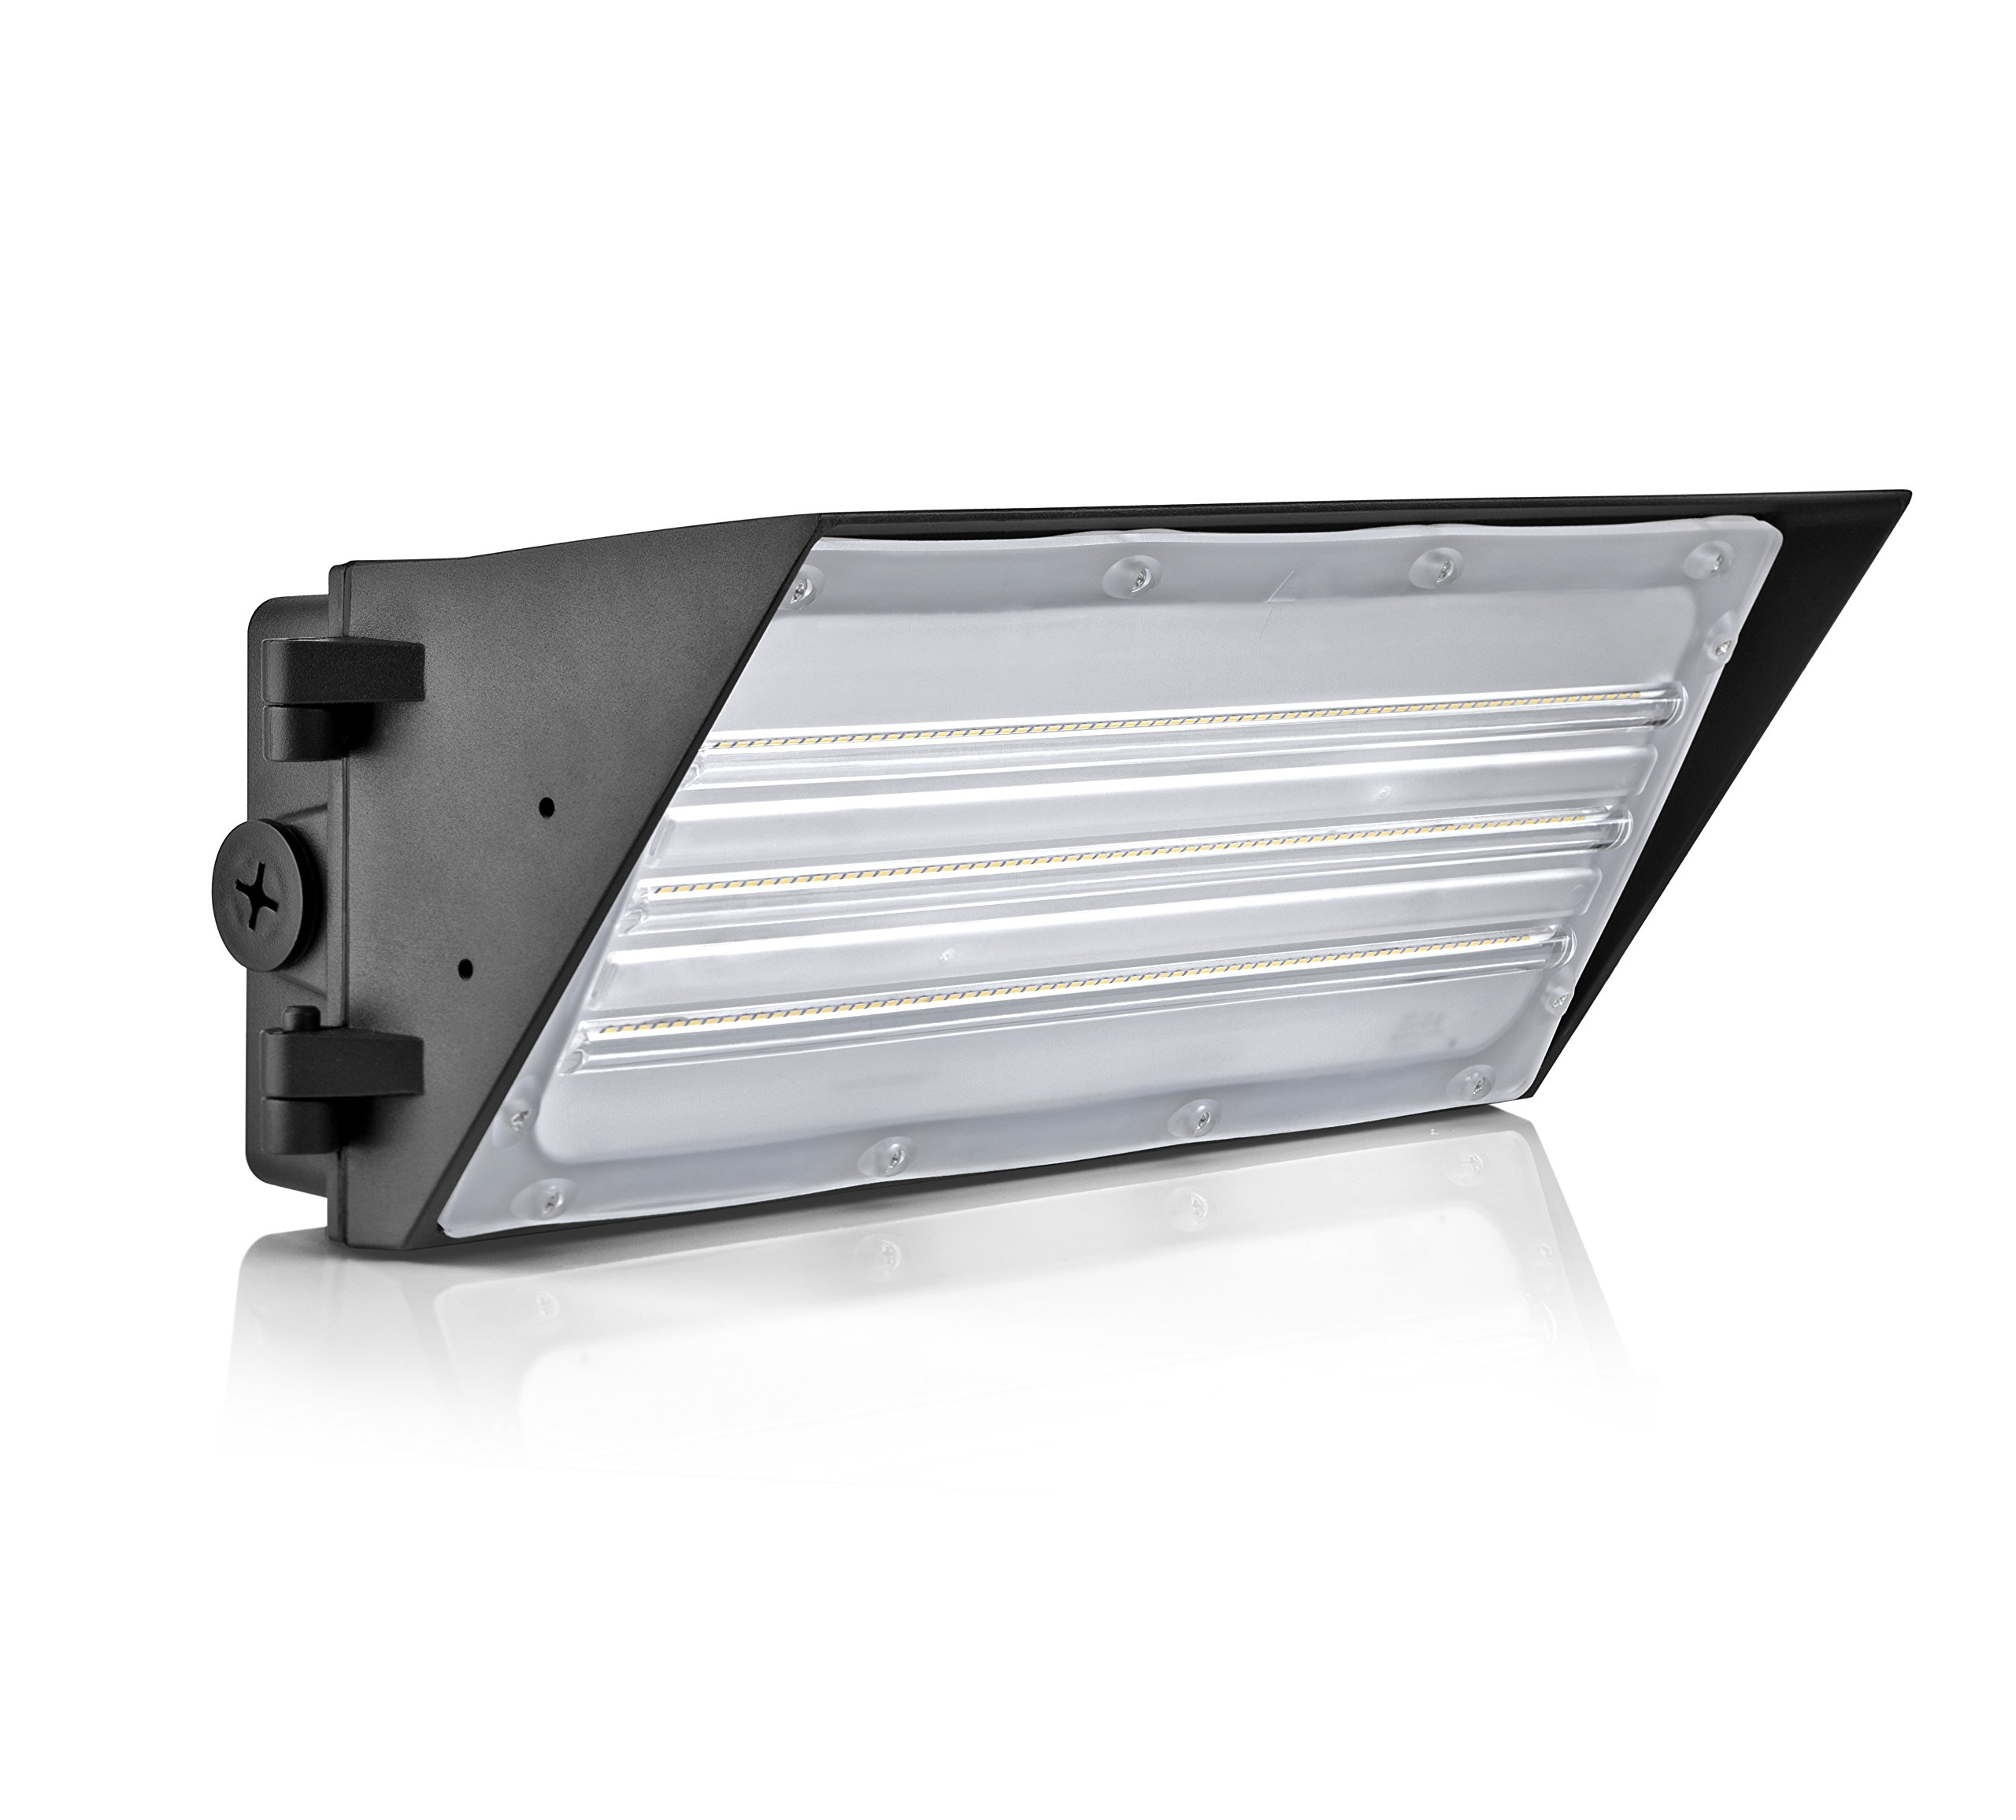 Hyperikon LED Wall Pack 40W Cut Off Fixture, 280W HPS/HID Replacement, 5000K, 5440 Lumens, Waterproof and Outdoor Rated, DLC 4.2 & UL Listed